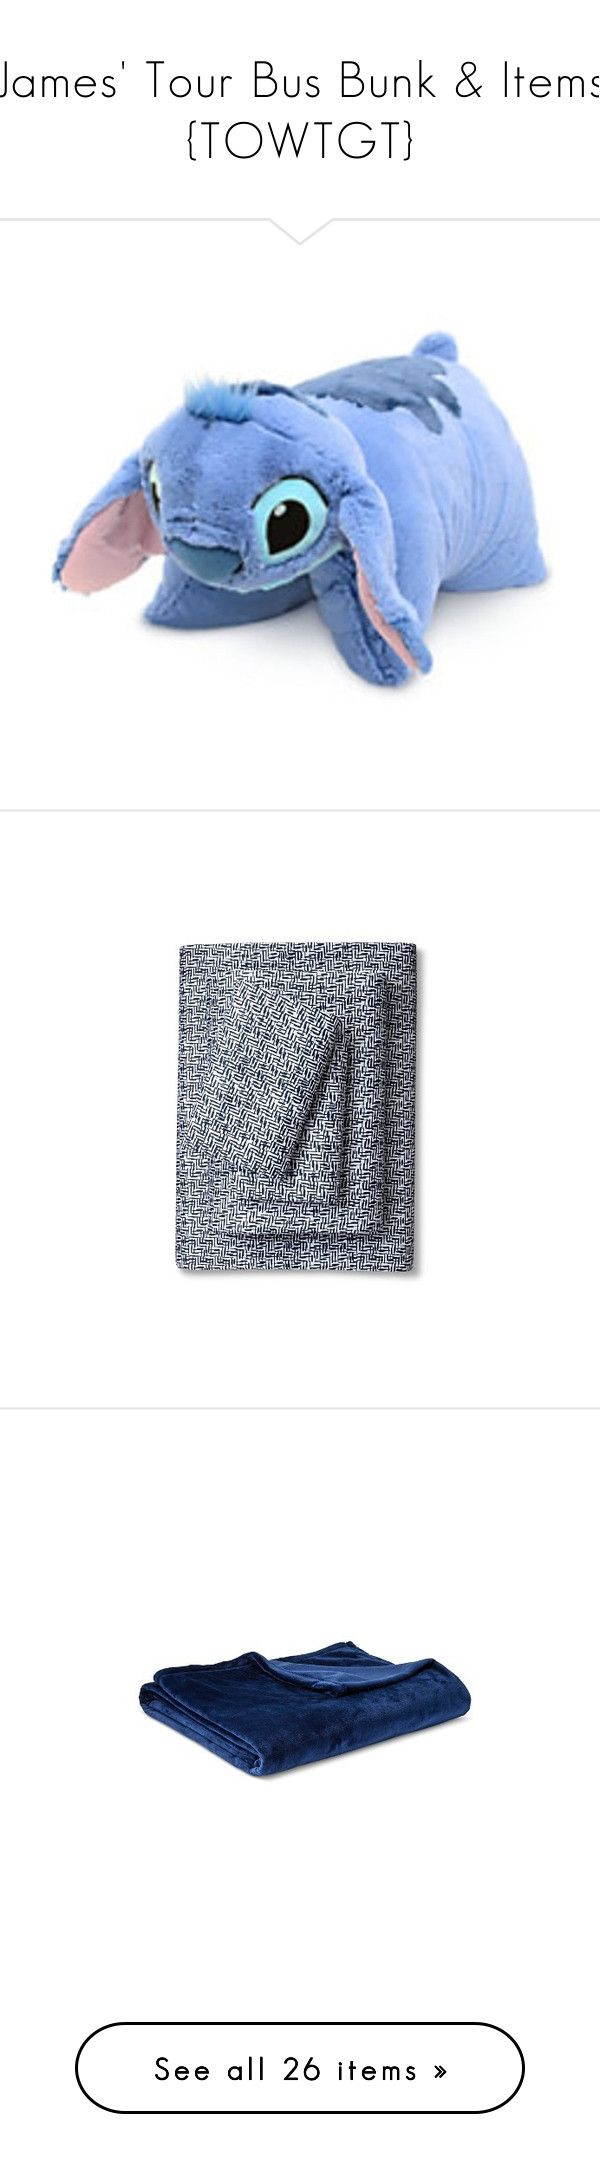 """""""James' Tour Bus Bunk & Items {TOWTGT}"""" by hiimmichelle ❤ liked on Polyvore featuring pillows, home, bed & bath, bedding, bed sheets, patterned bedding, contemporary bedding, nate berkus, nate berkus bedding and patterned sheet sets"""